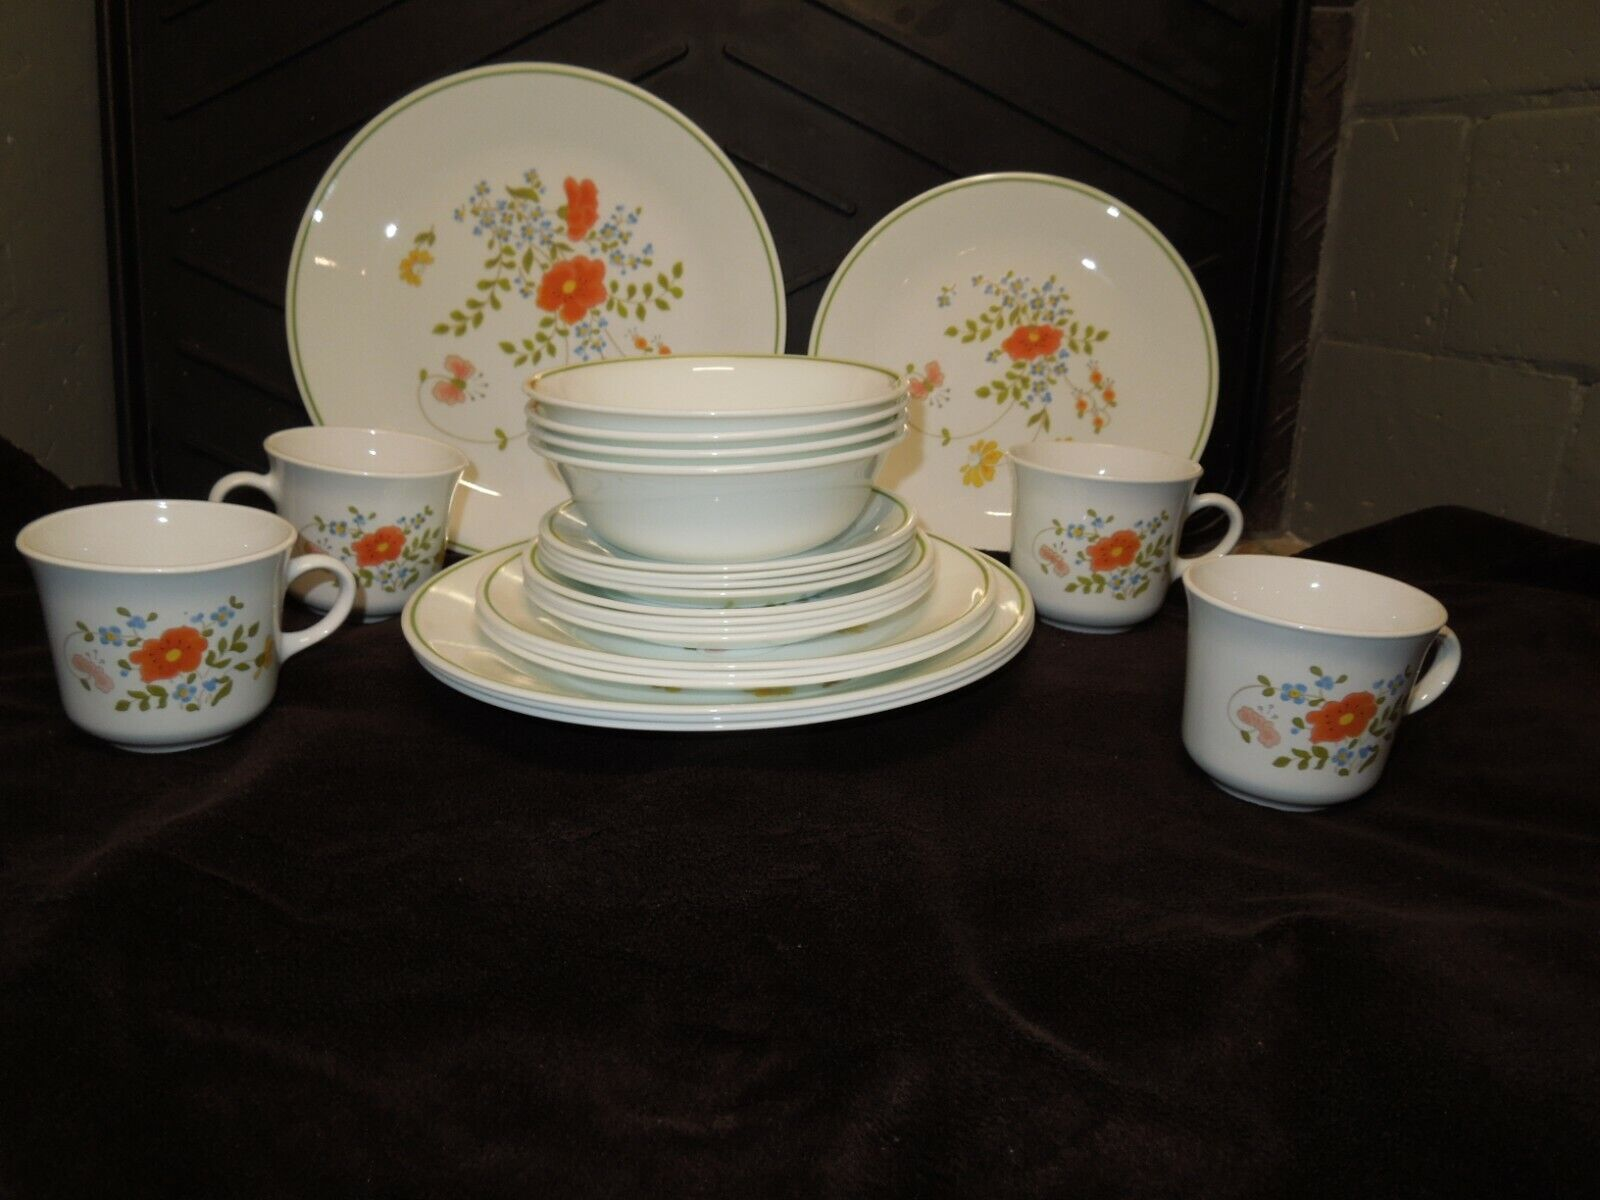 24~Corelle Corning Wildflower 6pc Setting for 4 Plates Bowls